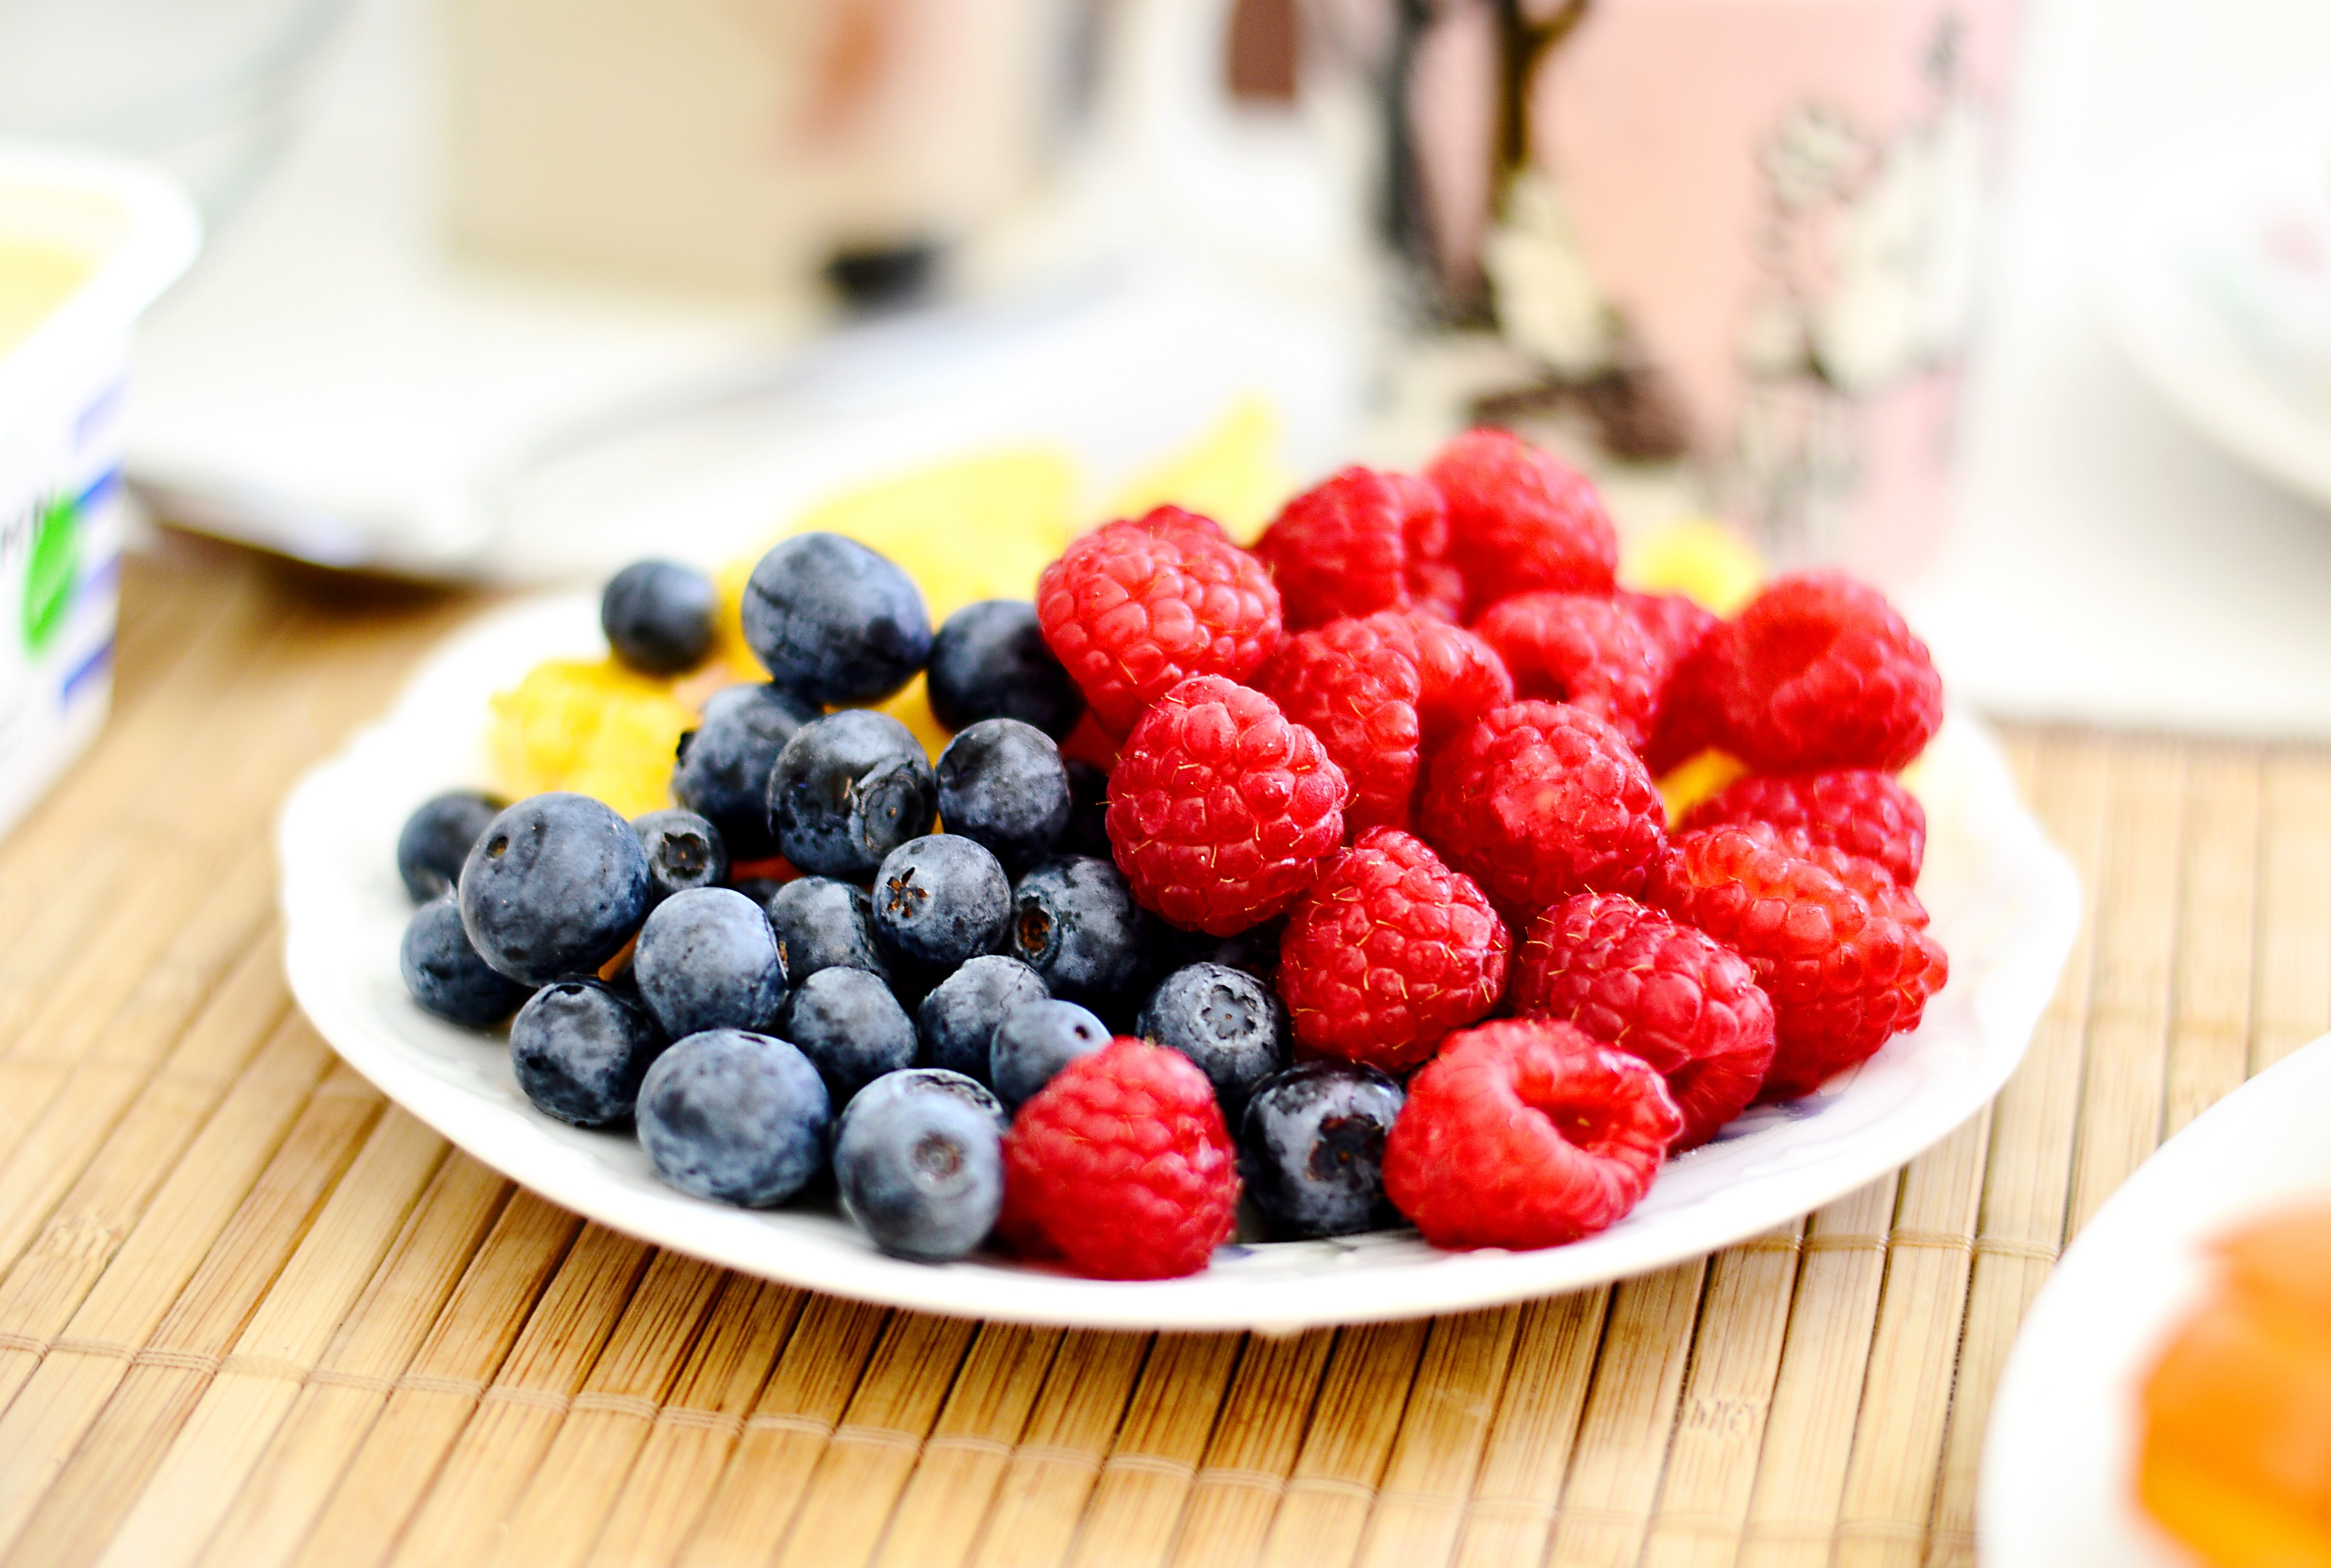 Plate of fresh fruit with raspberries and blueberries on a picnic table